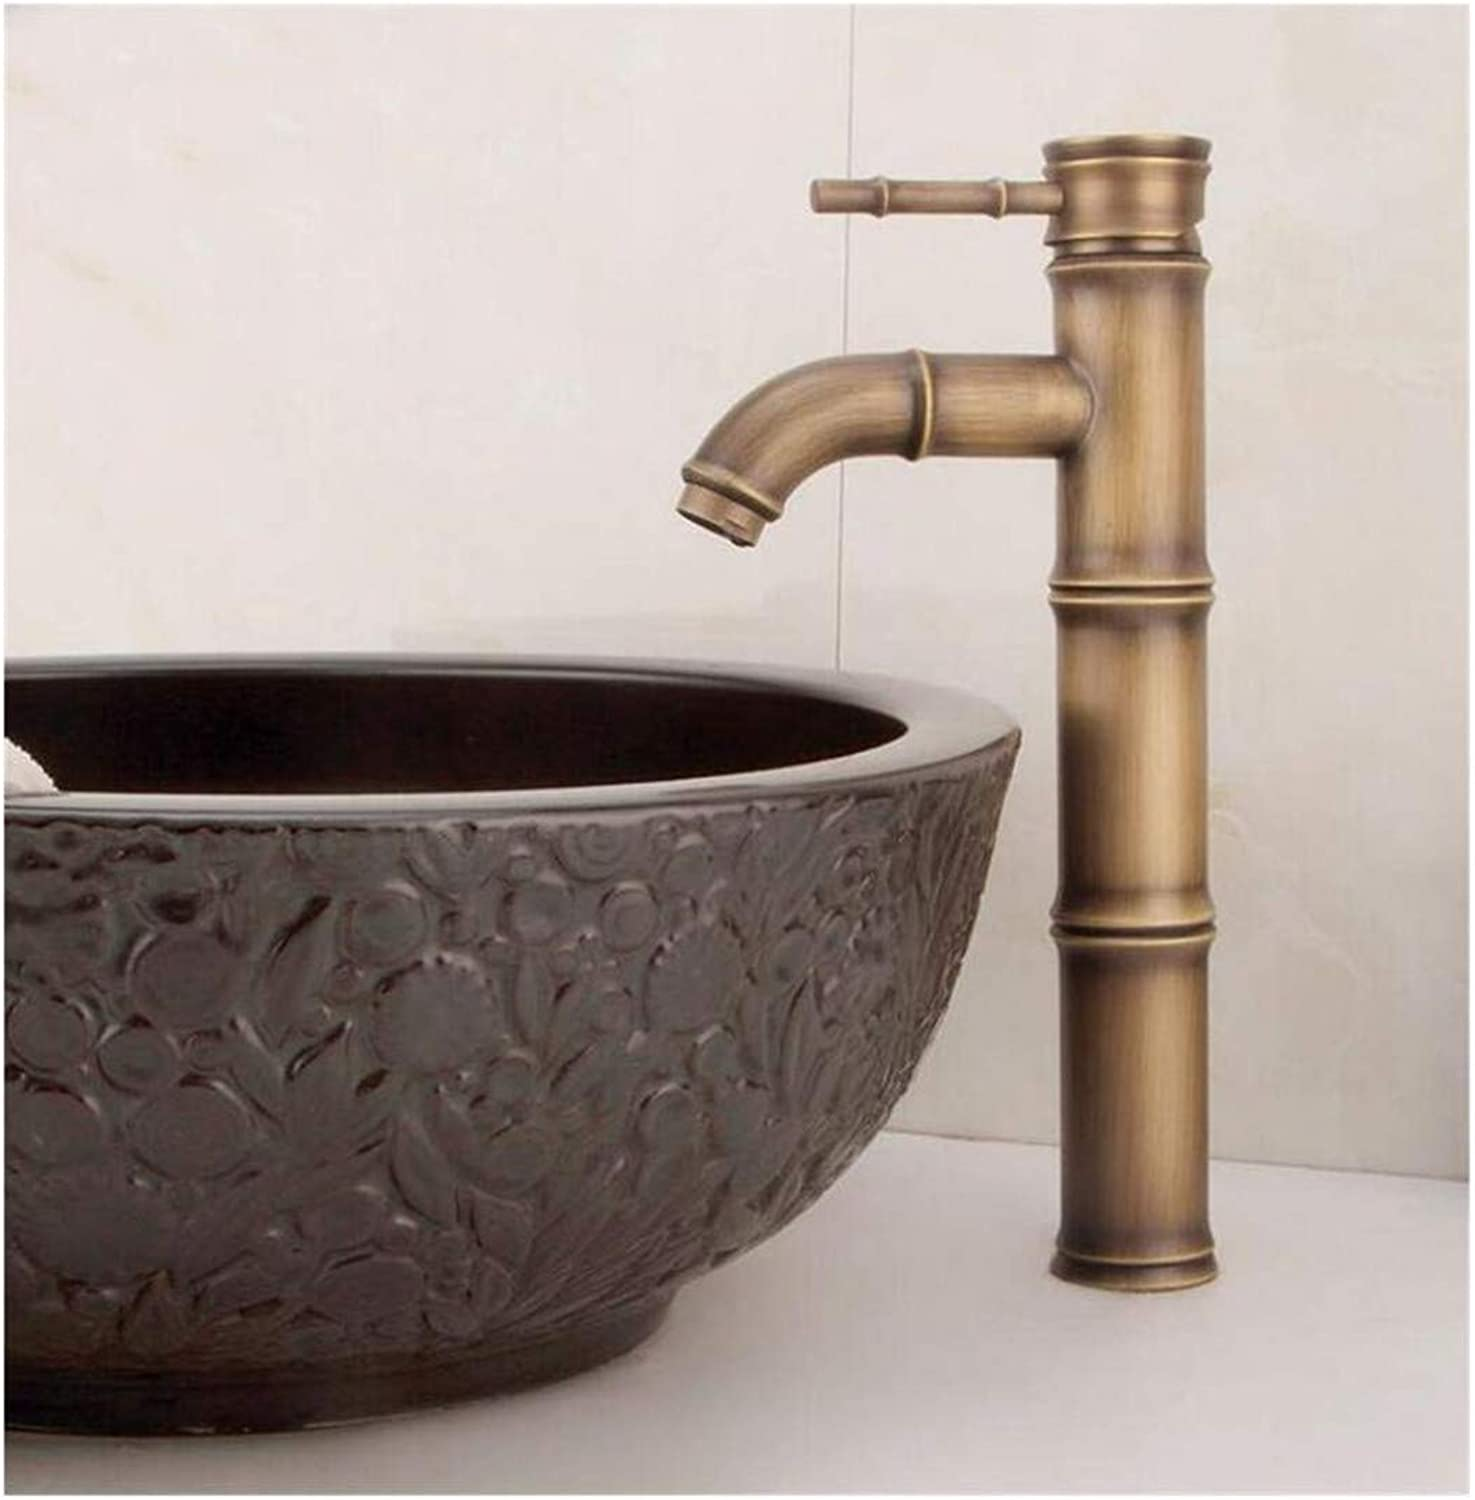 Kitchen Bath Basin Sink Bathroom Taps Basin Water Tap Faucet Bamboo Cold and Hot Water Mixer Taps Ctzl4481